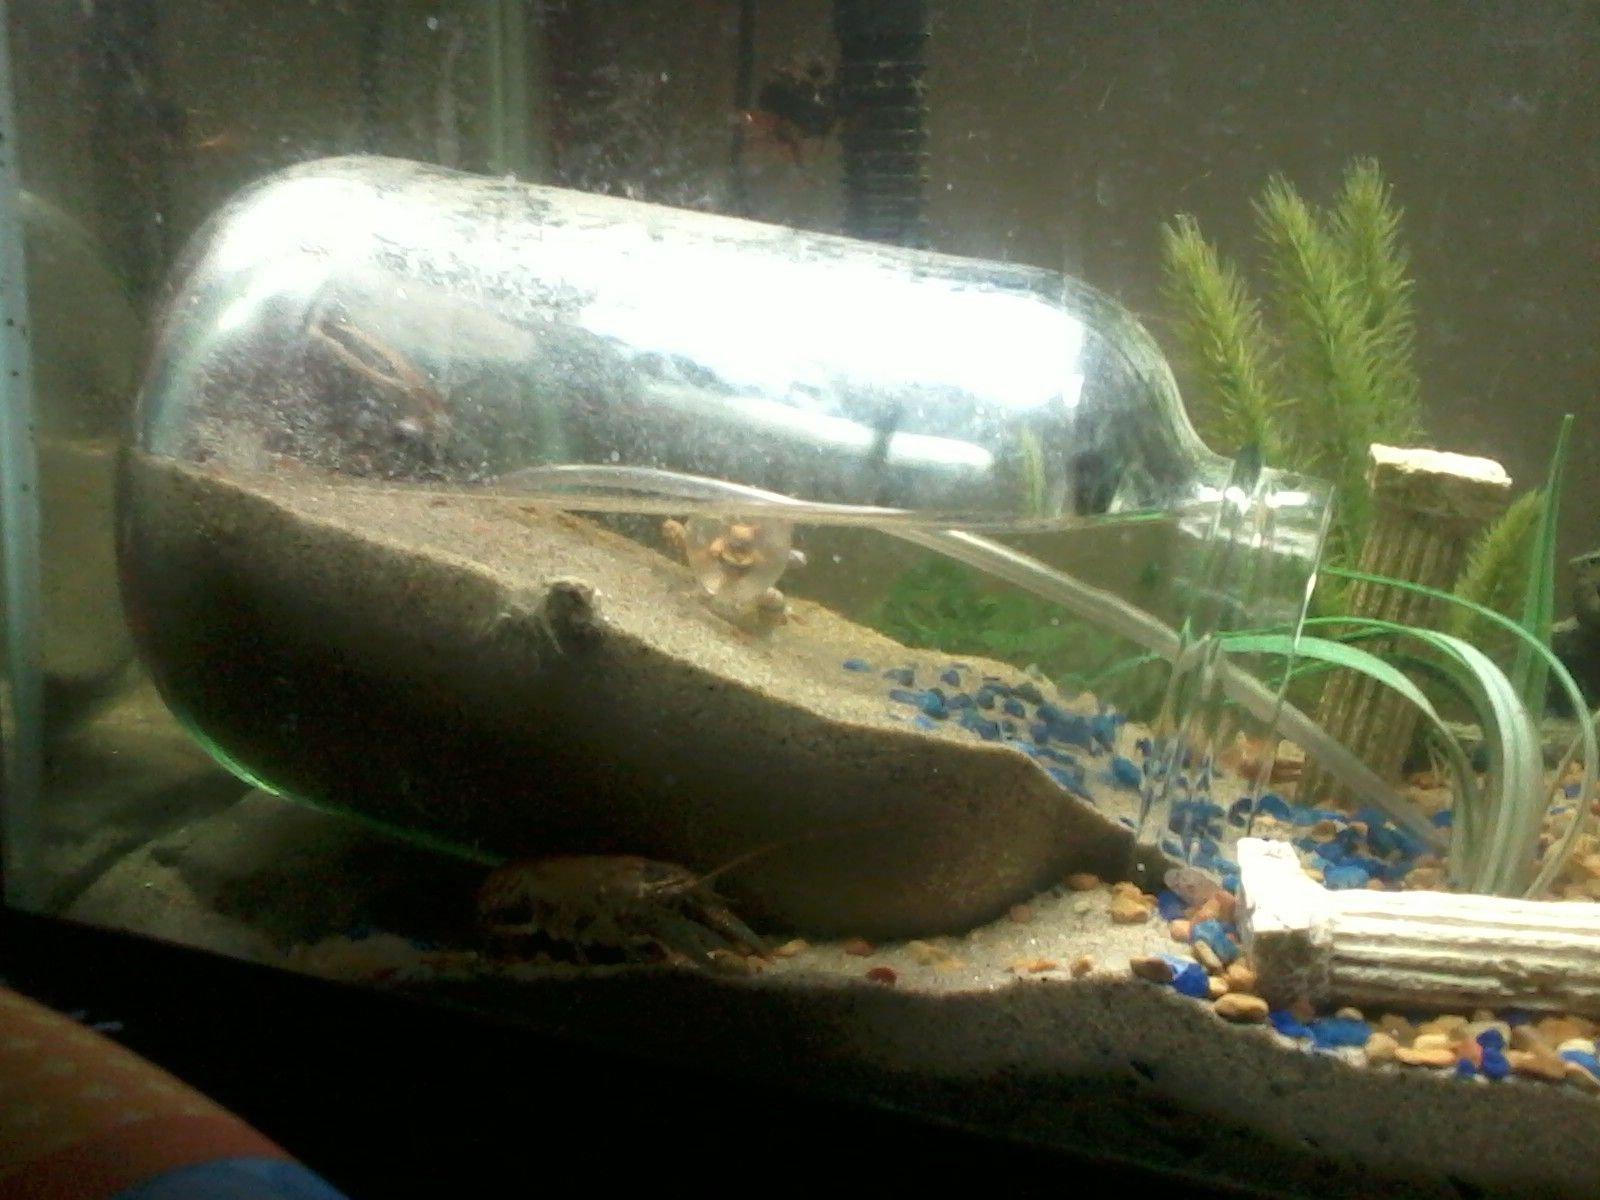 Freshwater fish tank upkeep - I Currently Have A 55 Gallon Fish Tank Up And Running And Needed My 10